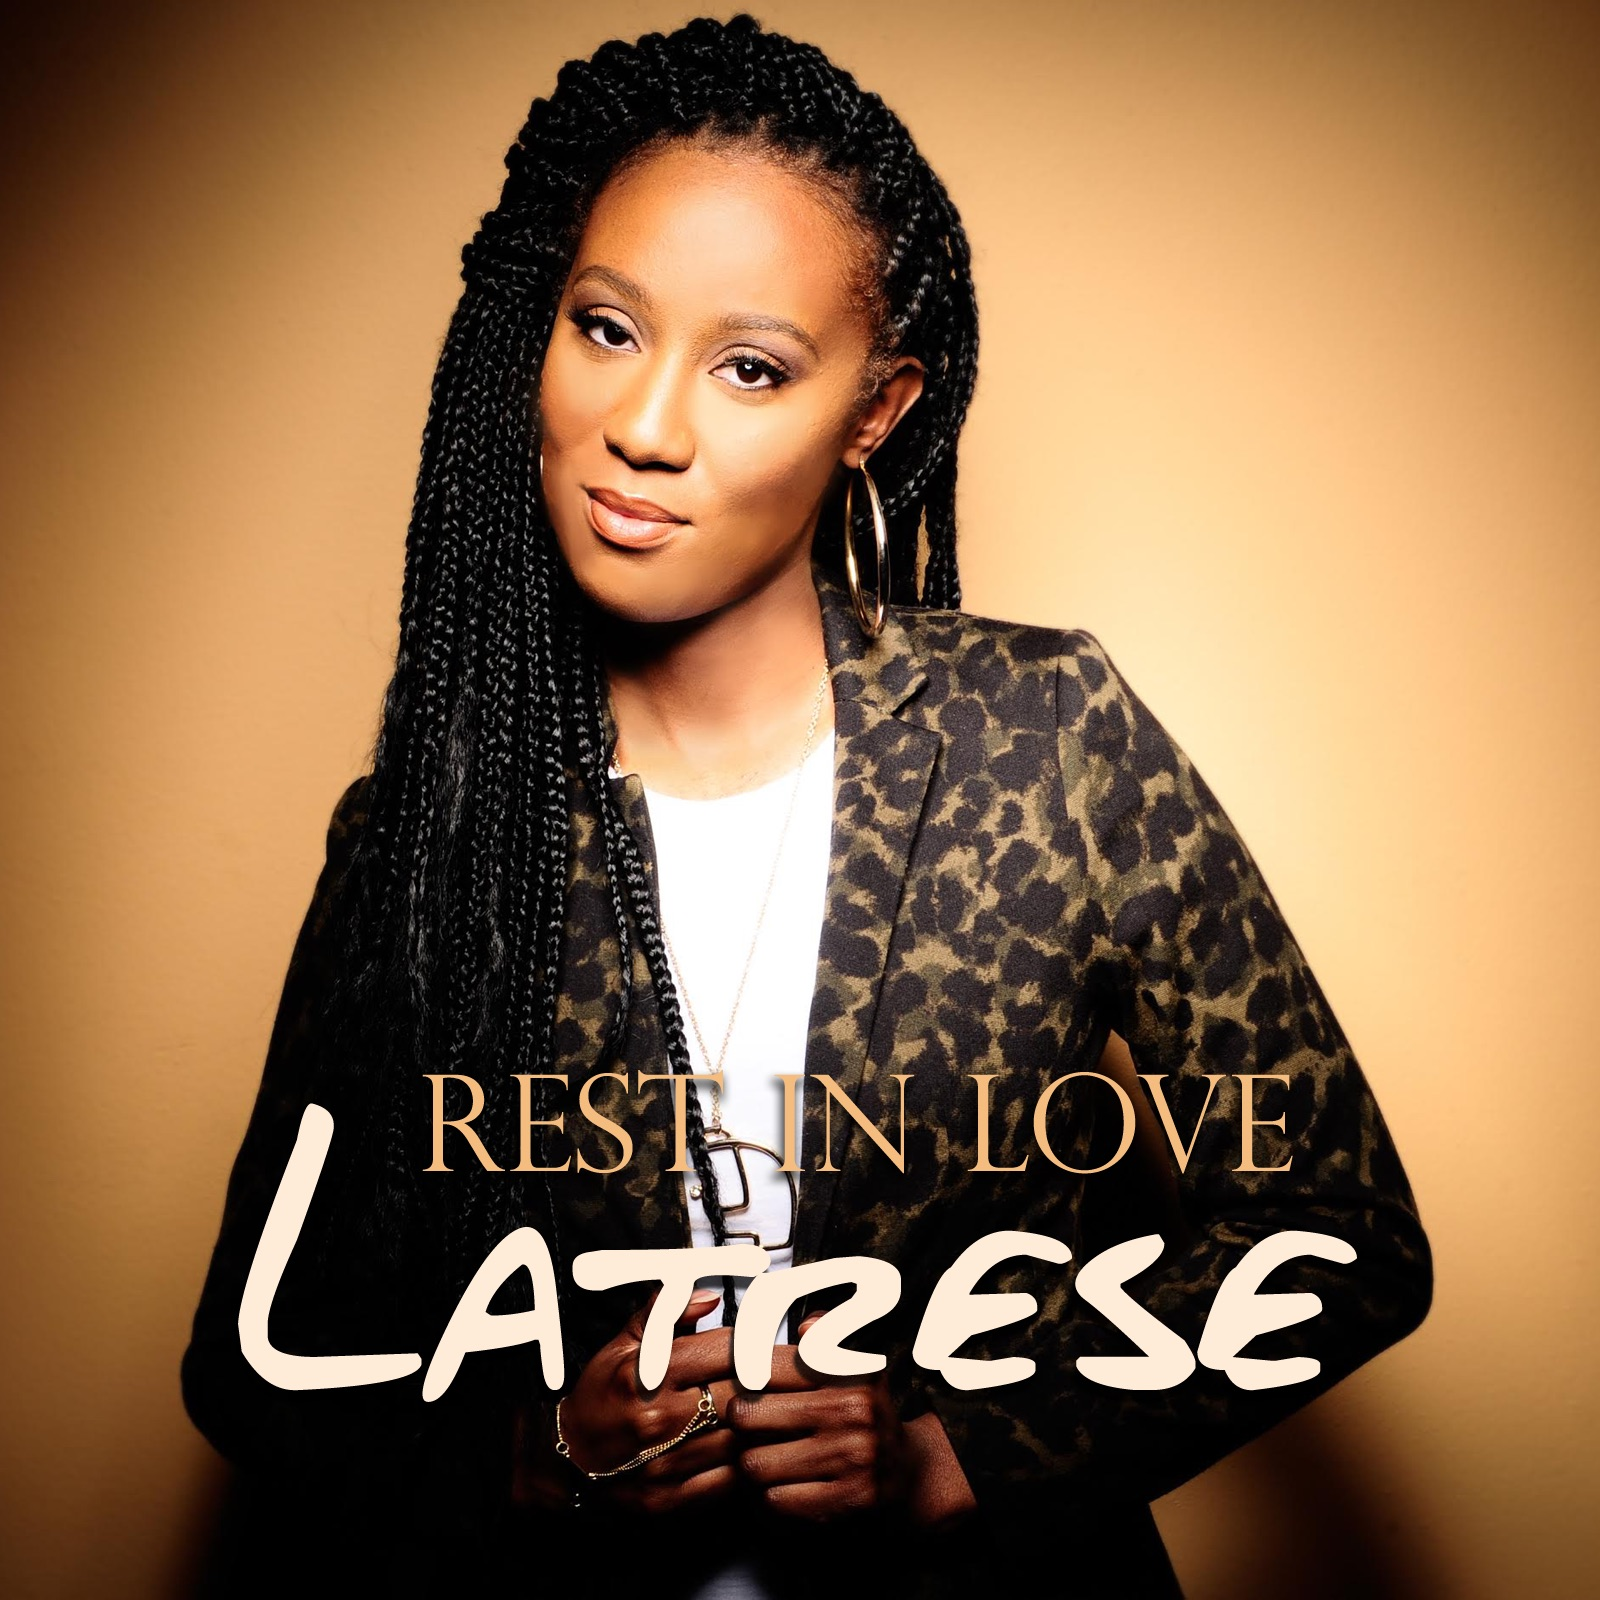 INDEPENDENT ARTIST LATRESE RELEASES NEW SINGLE